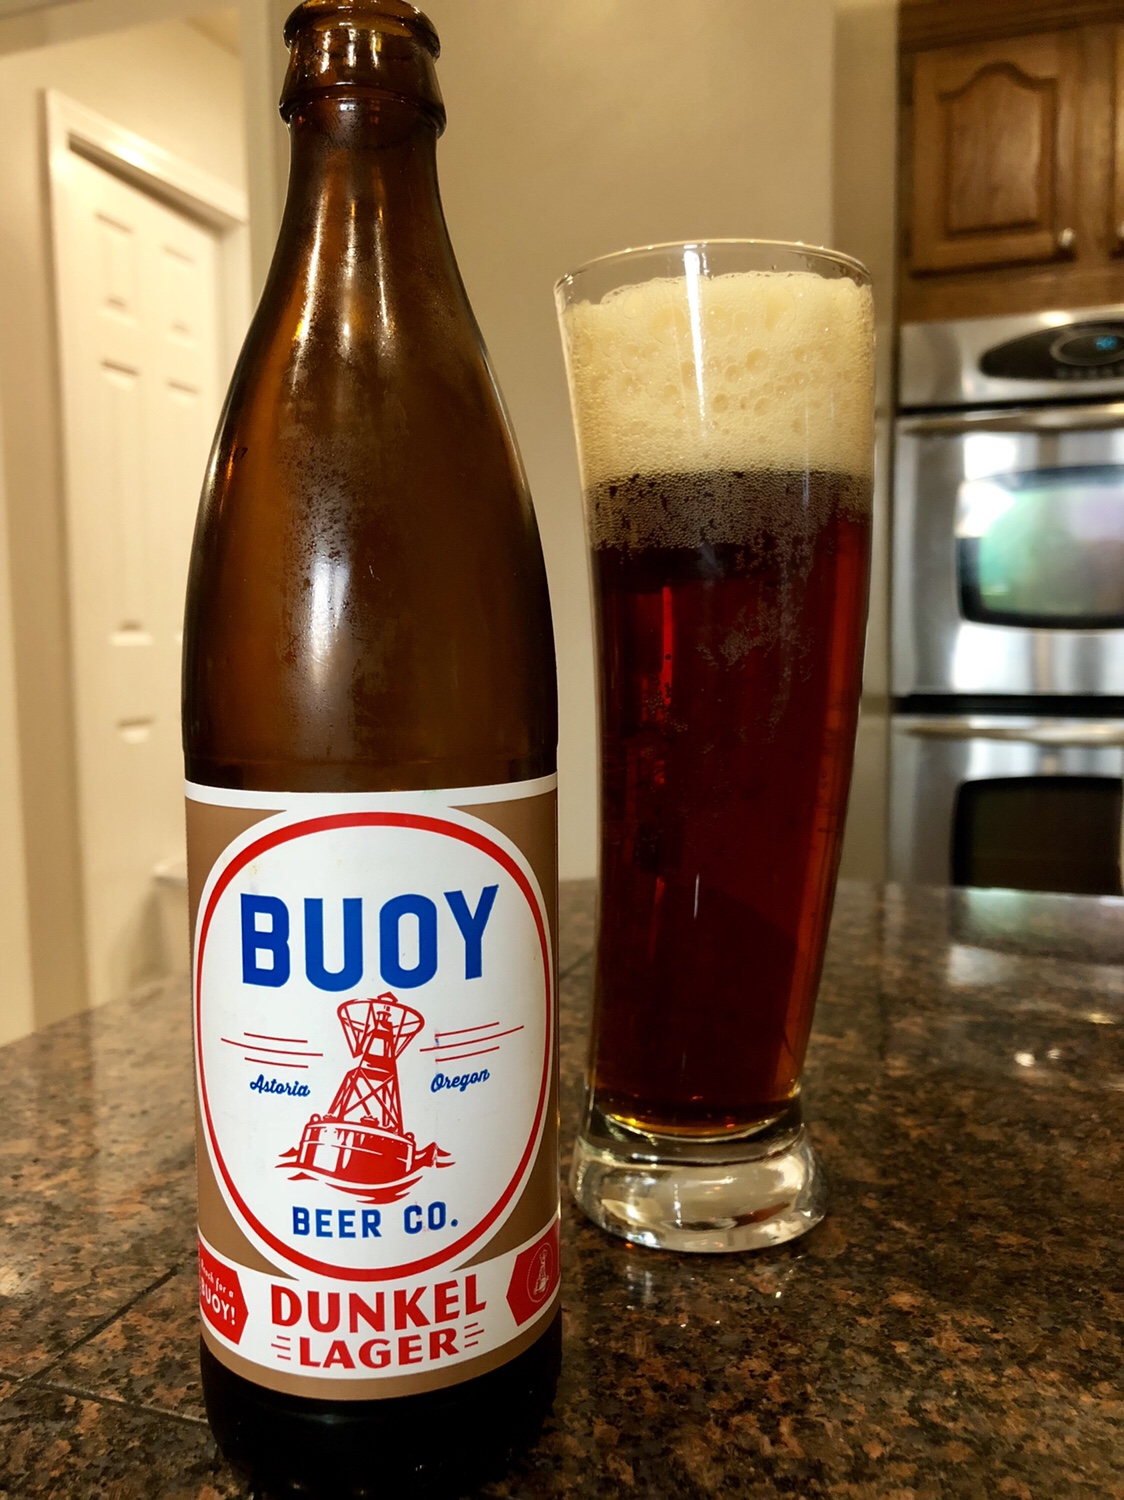 909. Buoy Beer Co. - Dunkel Lager